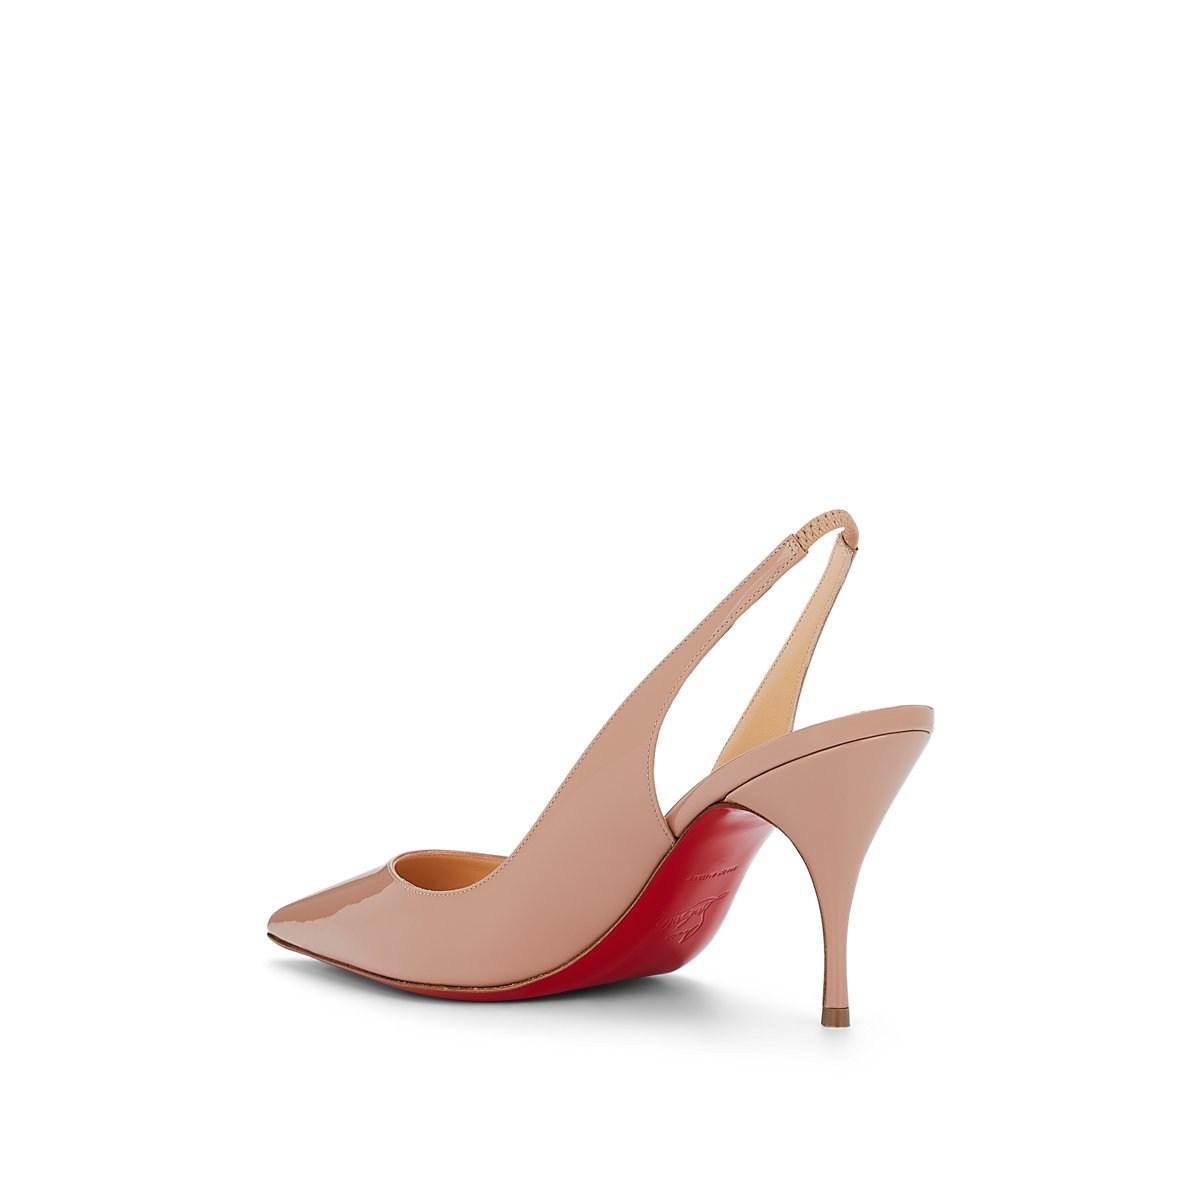 Christian Louboutin Nude Drama Sling 100 Poudre Suede